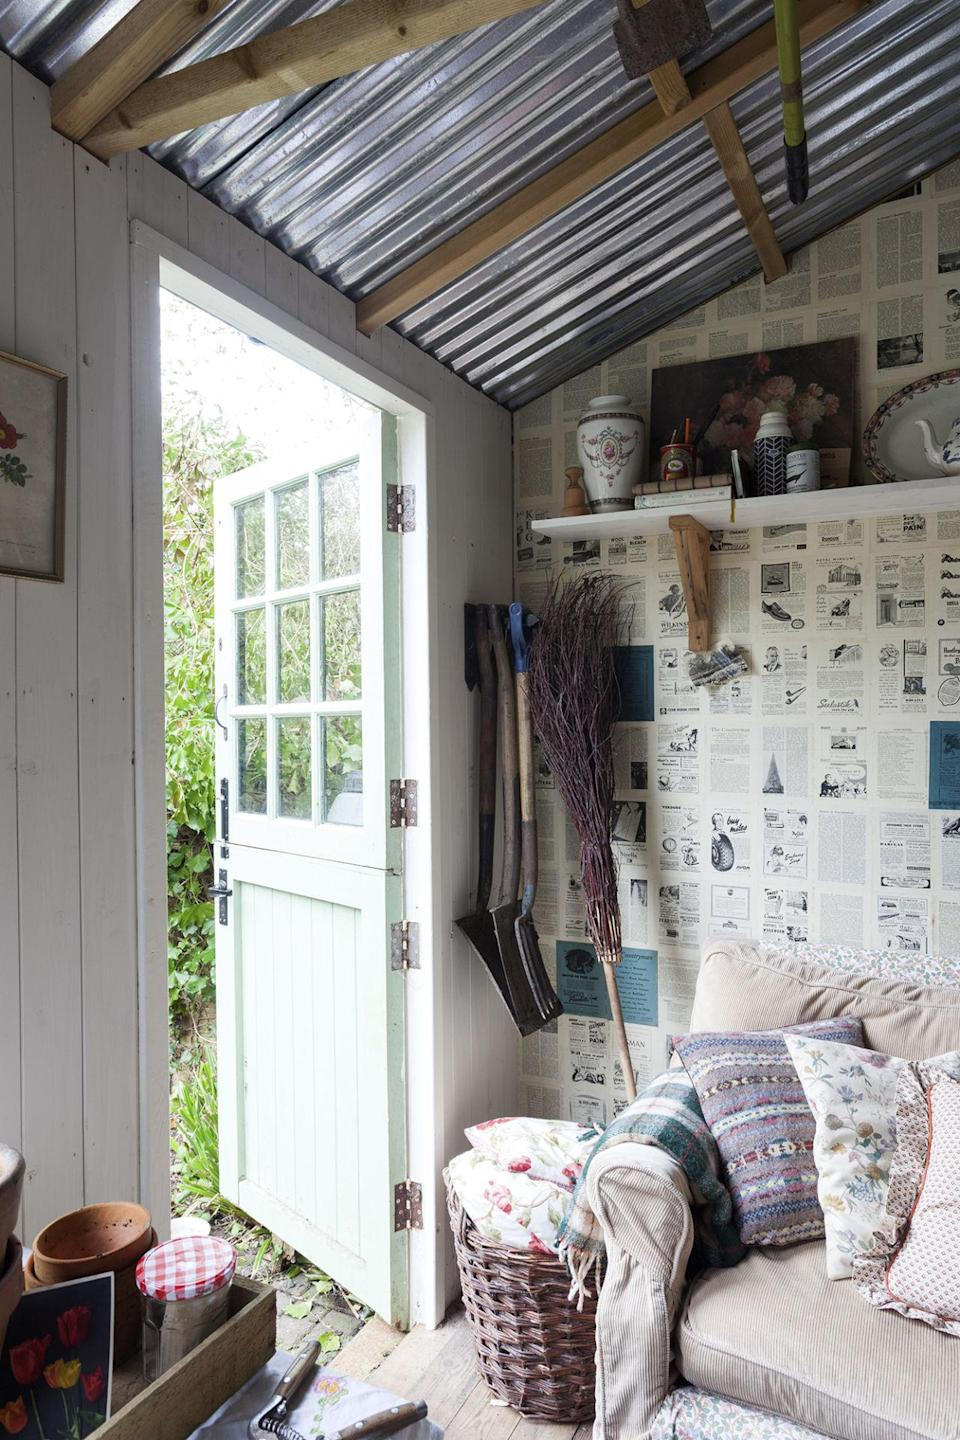 <p>A summerhouse gives you the chance to indulge a sense of escapism and create a personal retreat. It could serve as an extra living space or bedroom but it is well worth investing in running electricity to provide heating and lighting, in addition to insulation so it can be used year round. </p><p>Huts on wheels, such as vintage shepherd's huts, are very popular and new ones are being made by many companies following the traditional lines of the Victorian originals. These, too, can be kitted out with heating in the form of a traditional stove or served by plumbing and electricity if they have a permanent site. Alternatively, you might want to keep furnishings simple and use it as a place to camp out in the summer. </p>